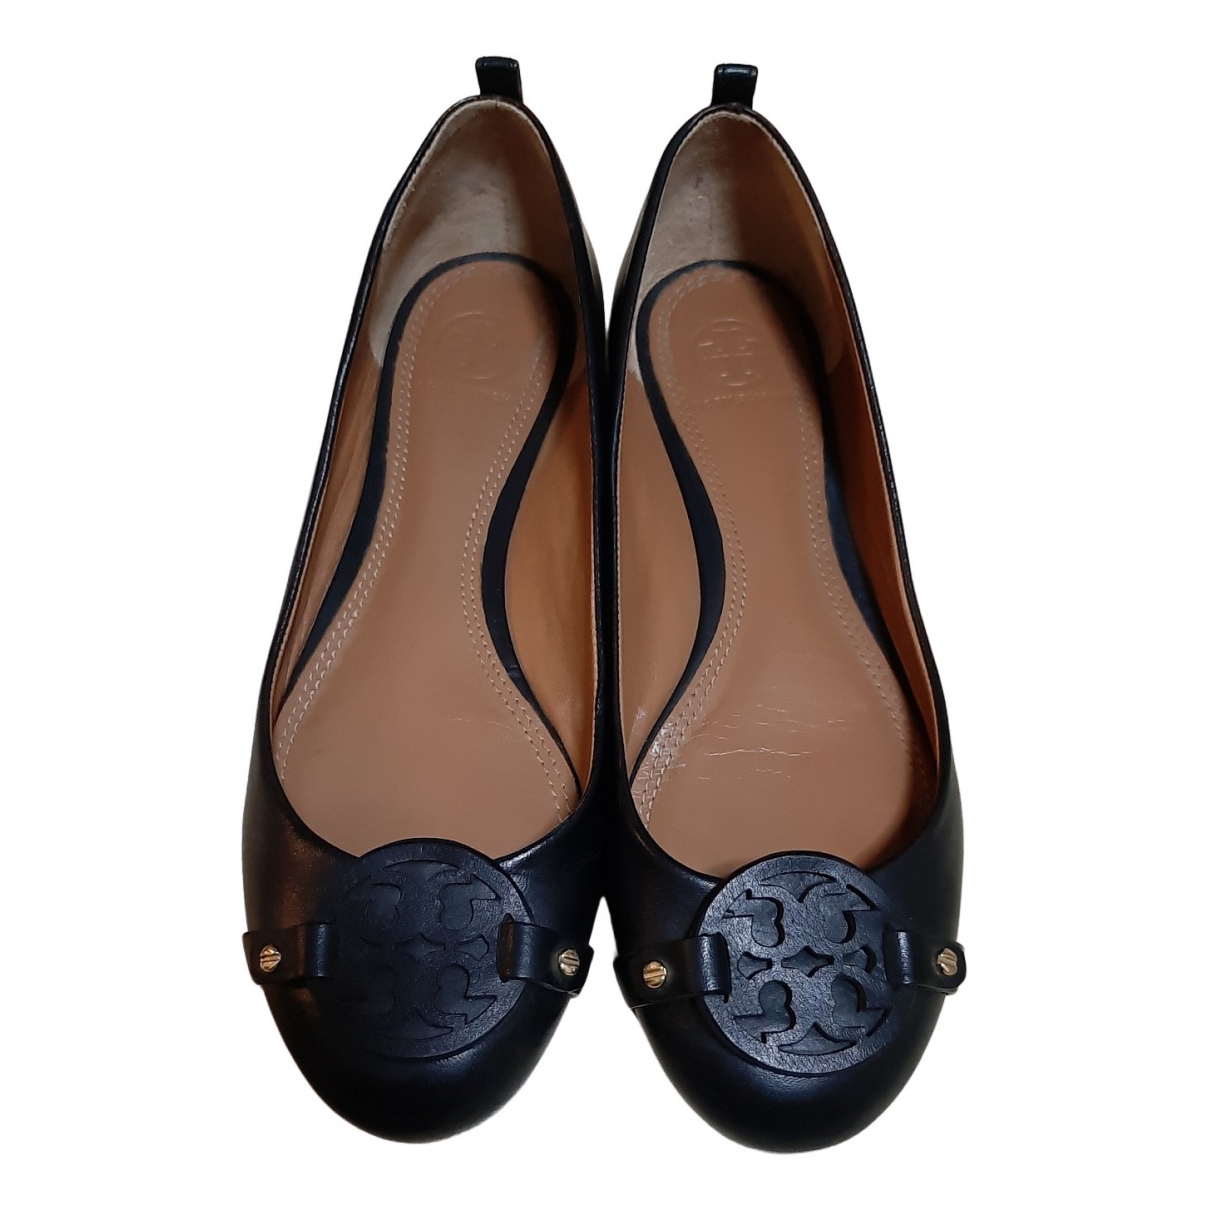 Tory Burch N Black Leather Ballet flats for Women 7 US